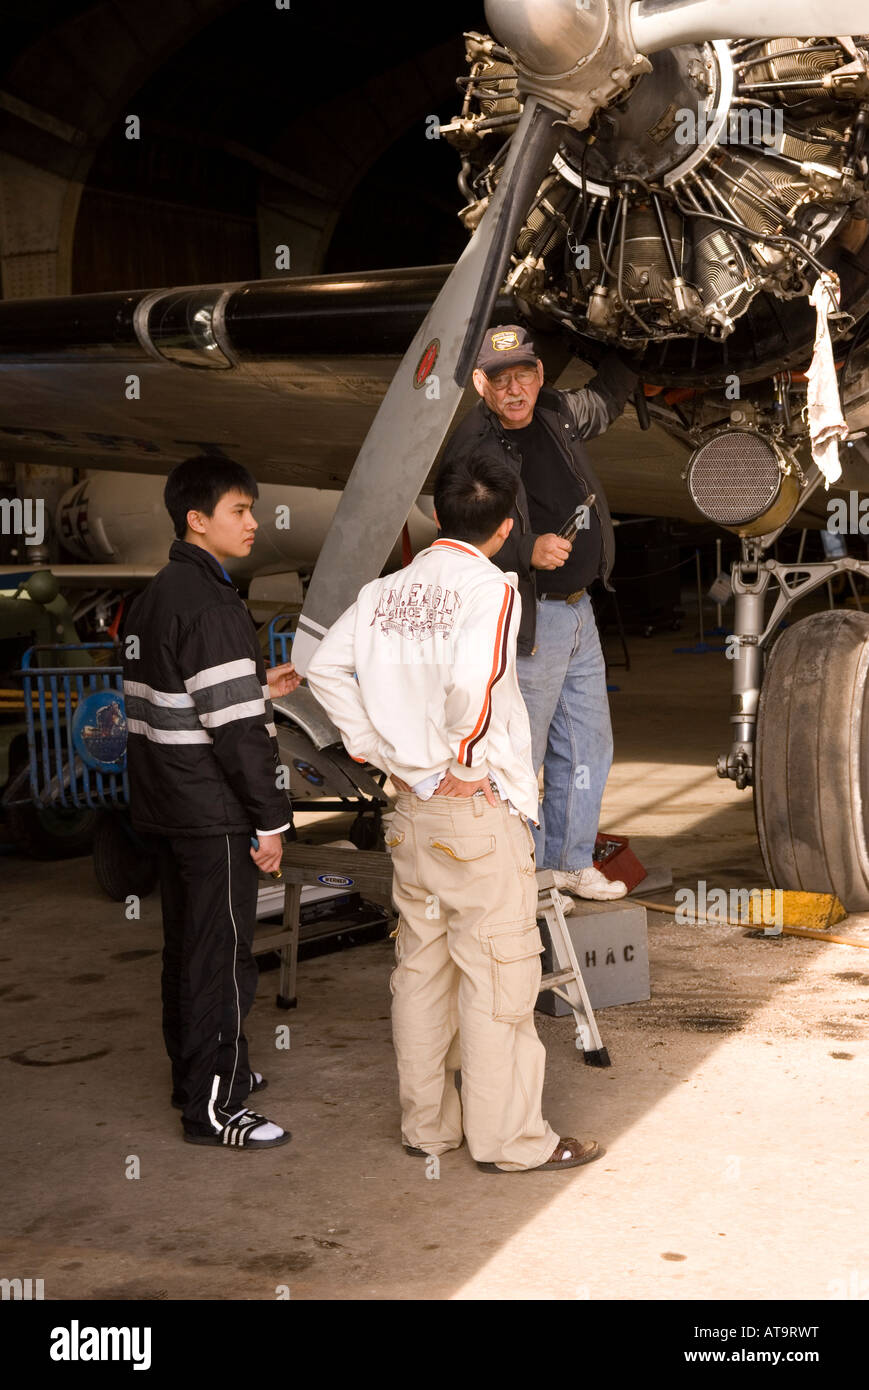 Two Asian Teen Boys Listen to Curator Tell about Plane at Carolinas Aviation Museum in Charlotte NC USA - Stock Image